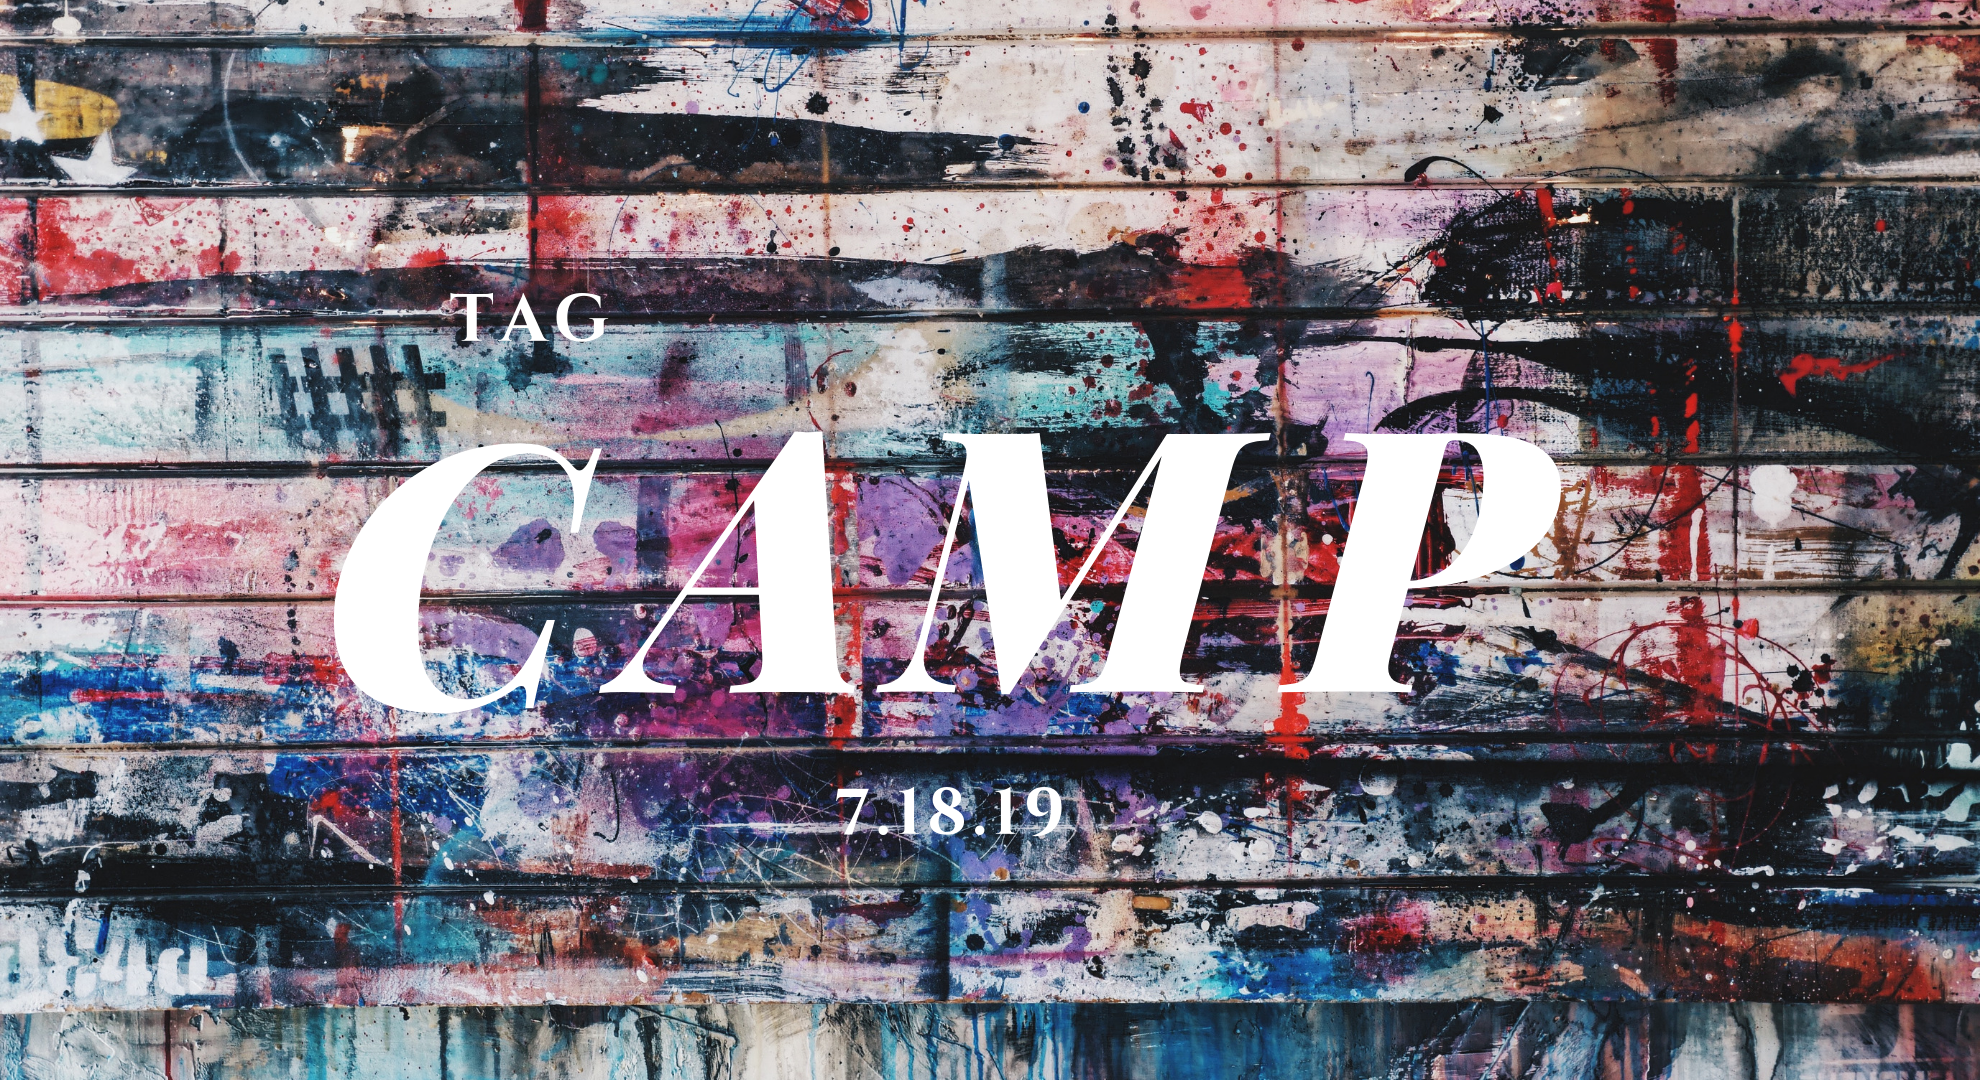 Tag_Camp-(1920x1080).png